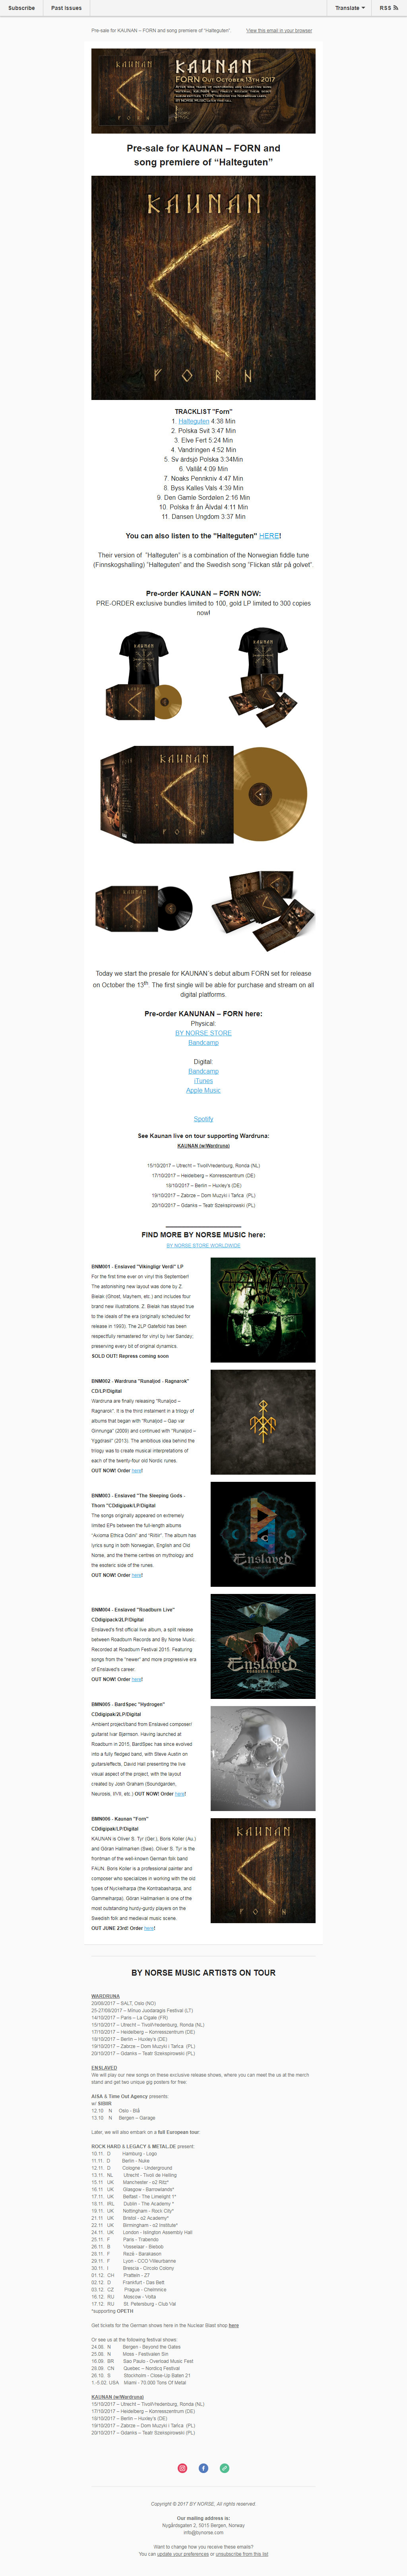 bynorse newsletter email marketing